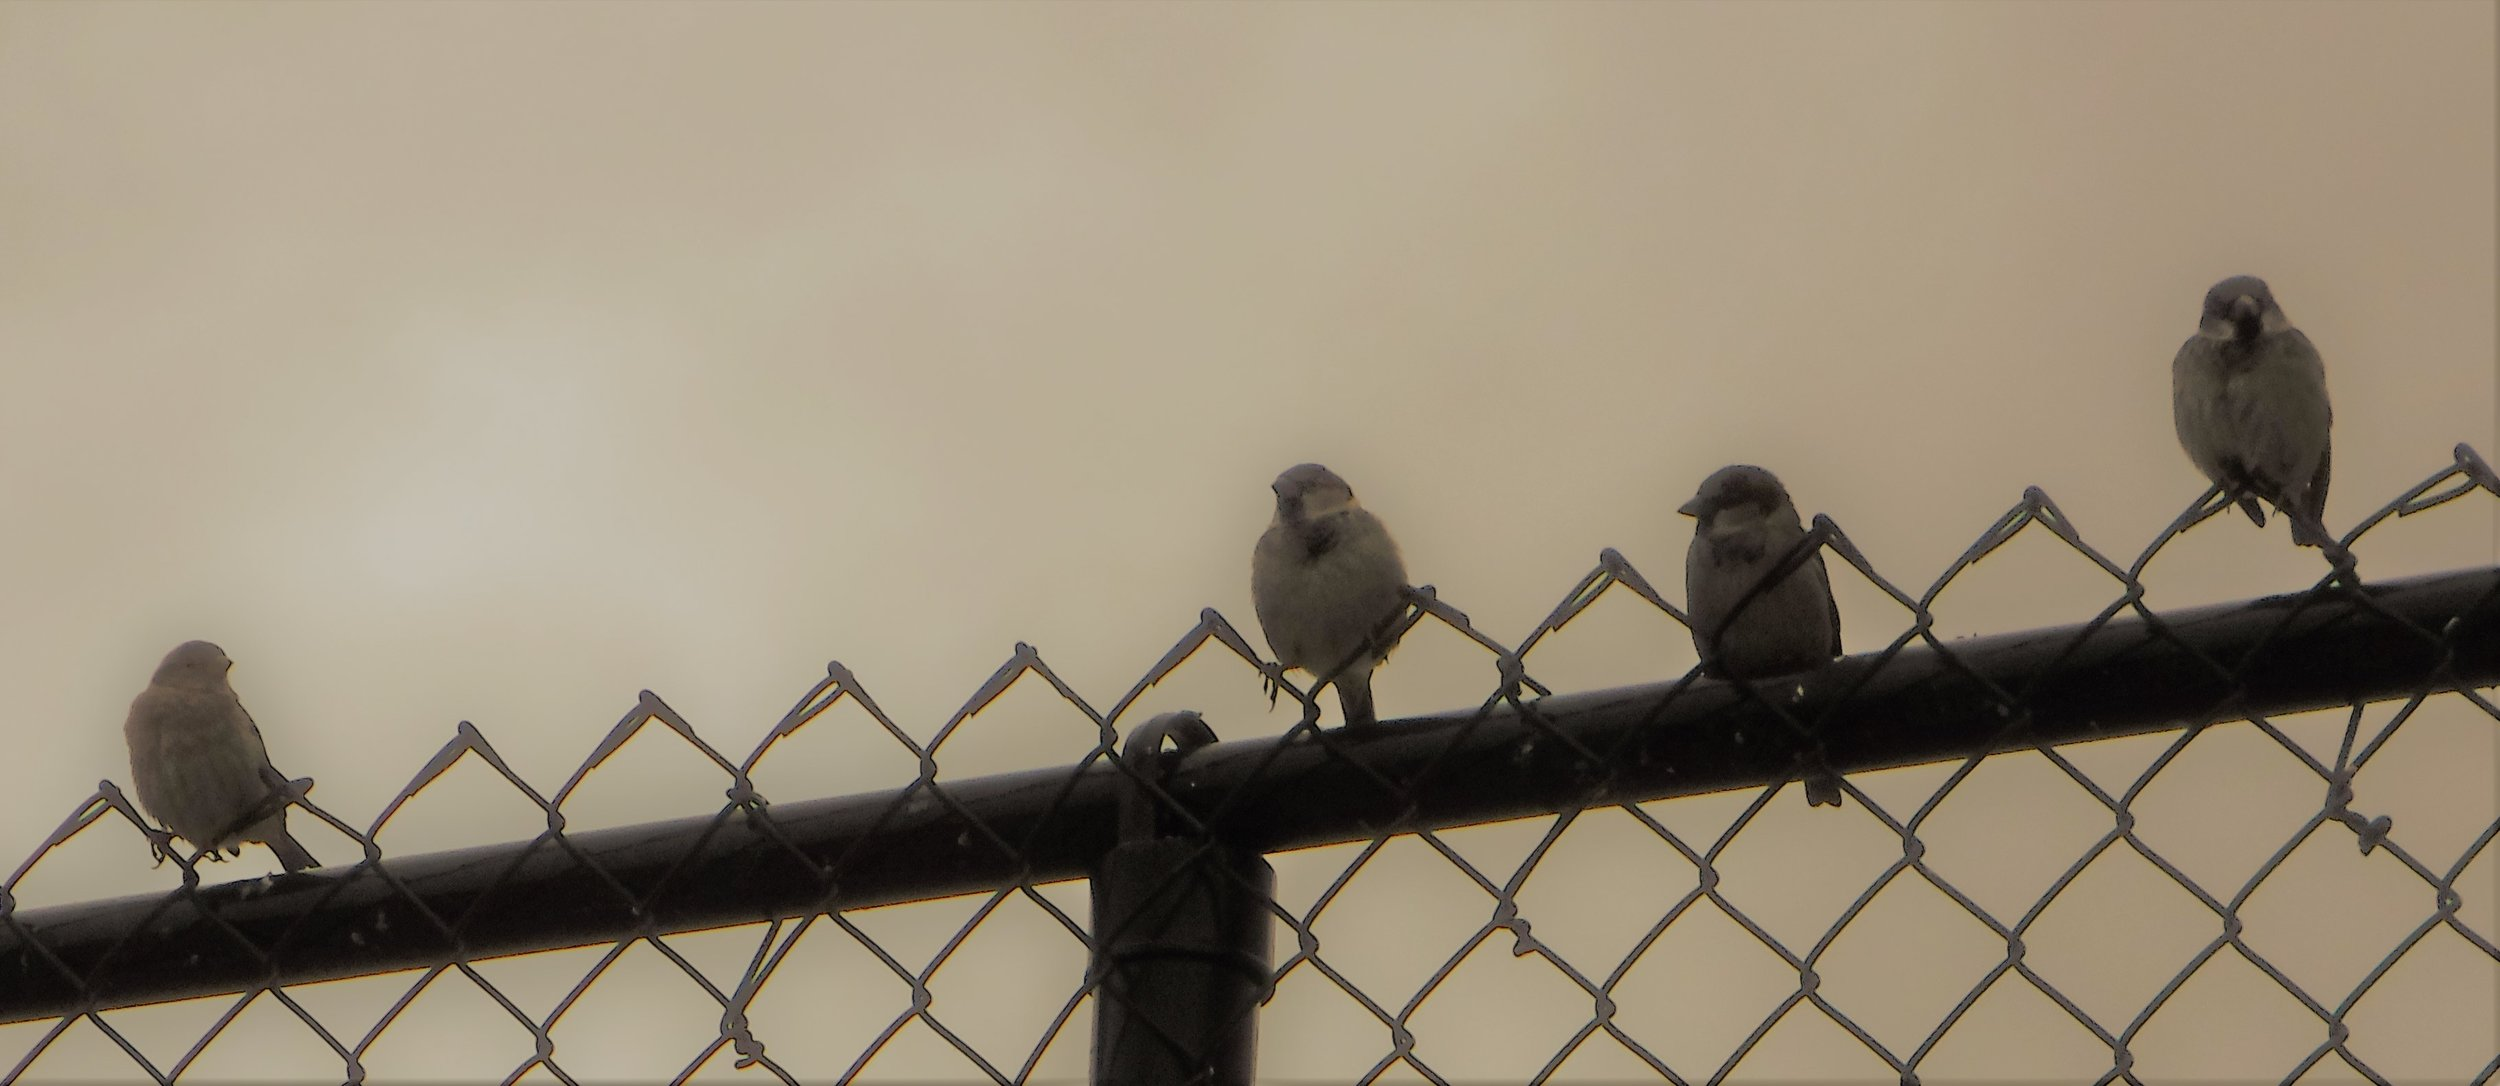 Birds on a chain-link fence at the Canadian Tire, Paris, Ont.